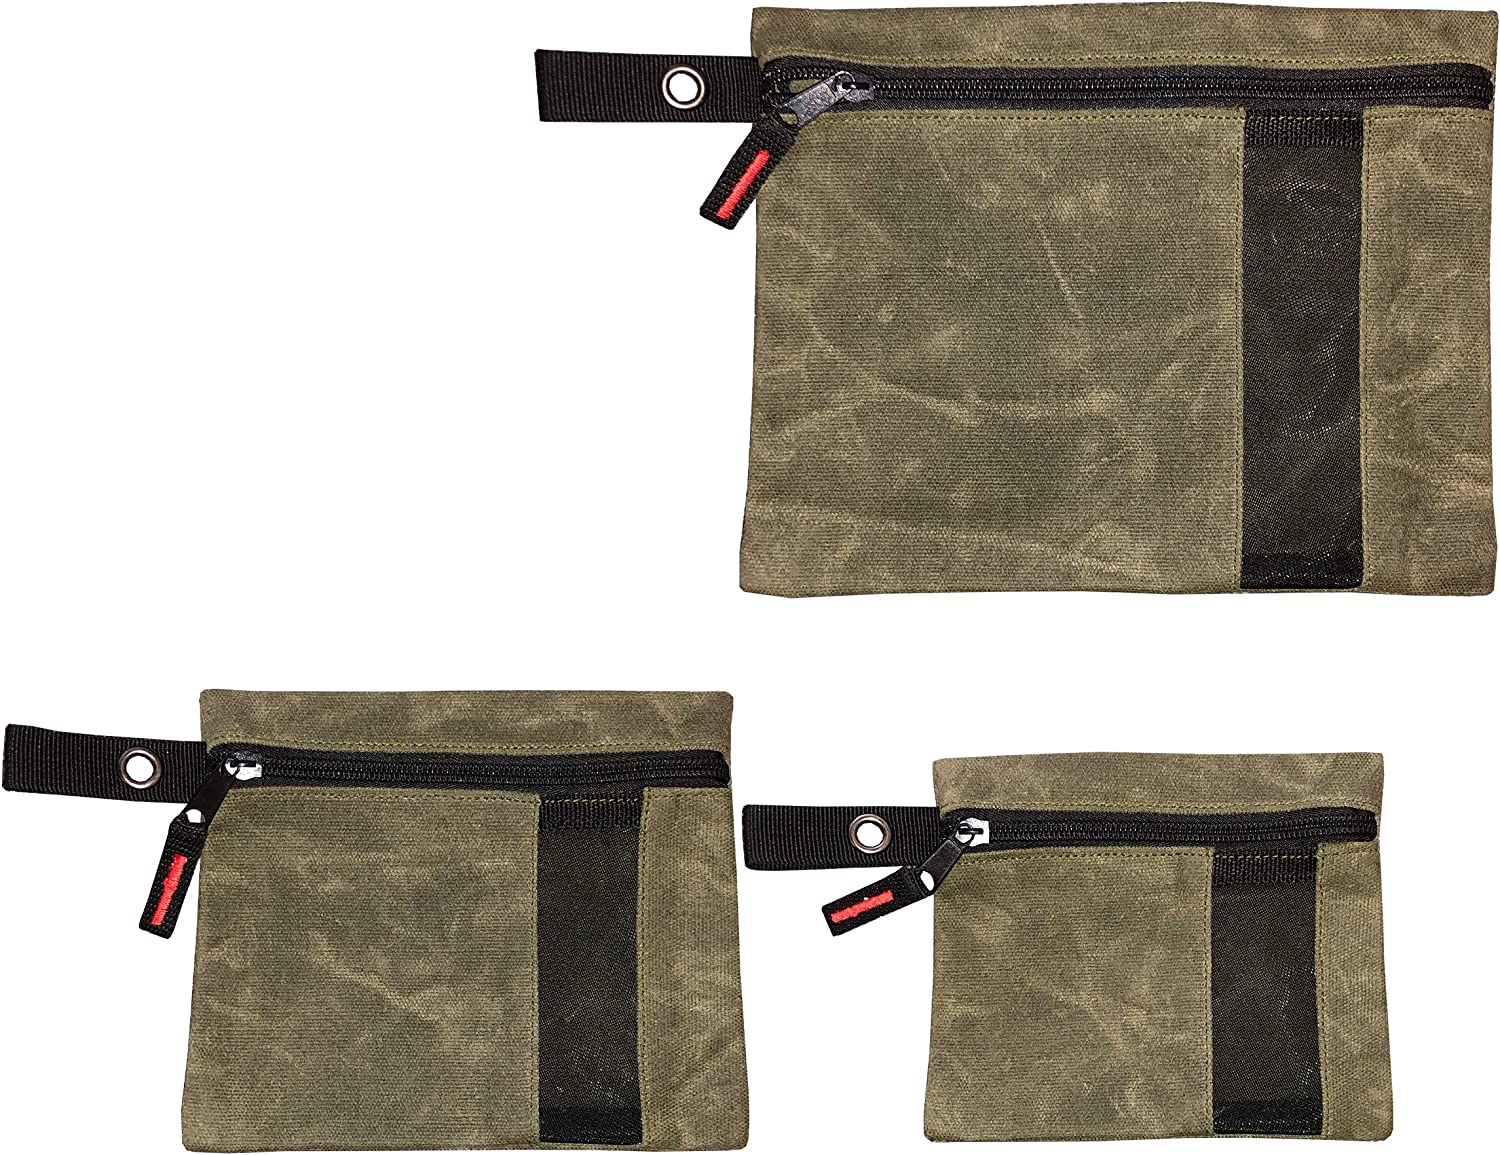 Canyon Super popular specialty store Small Bags - 3 Waxed #12 Individual Sale item Canvas